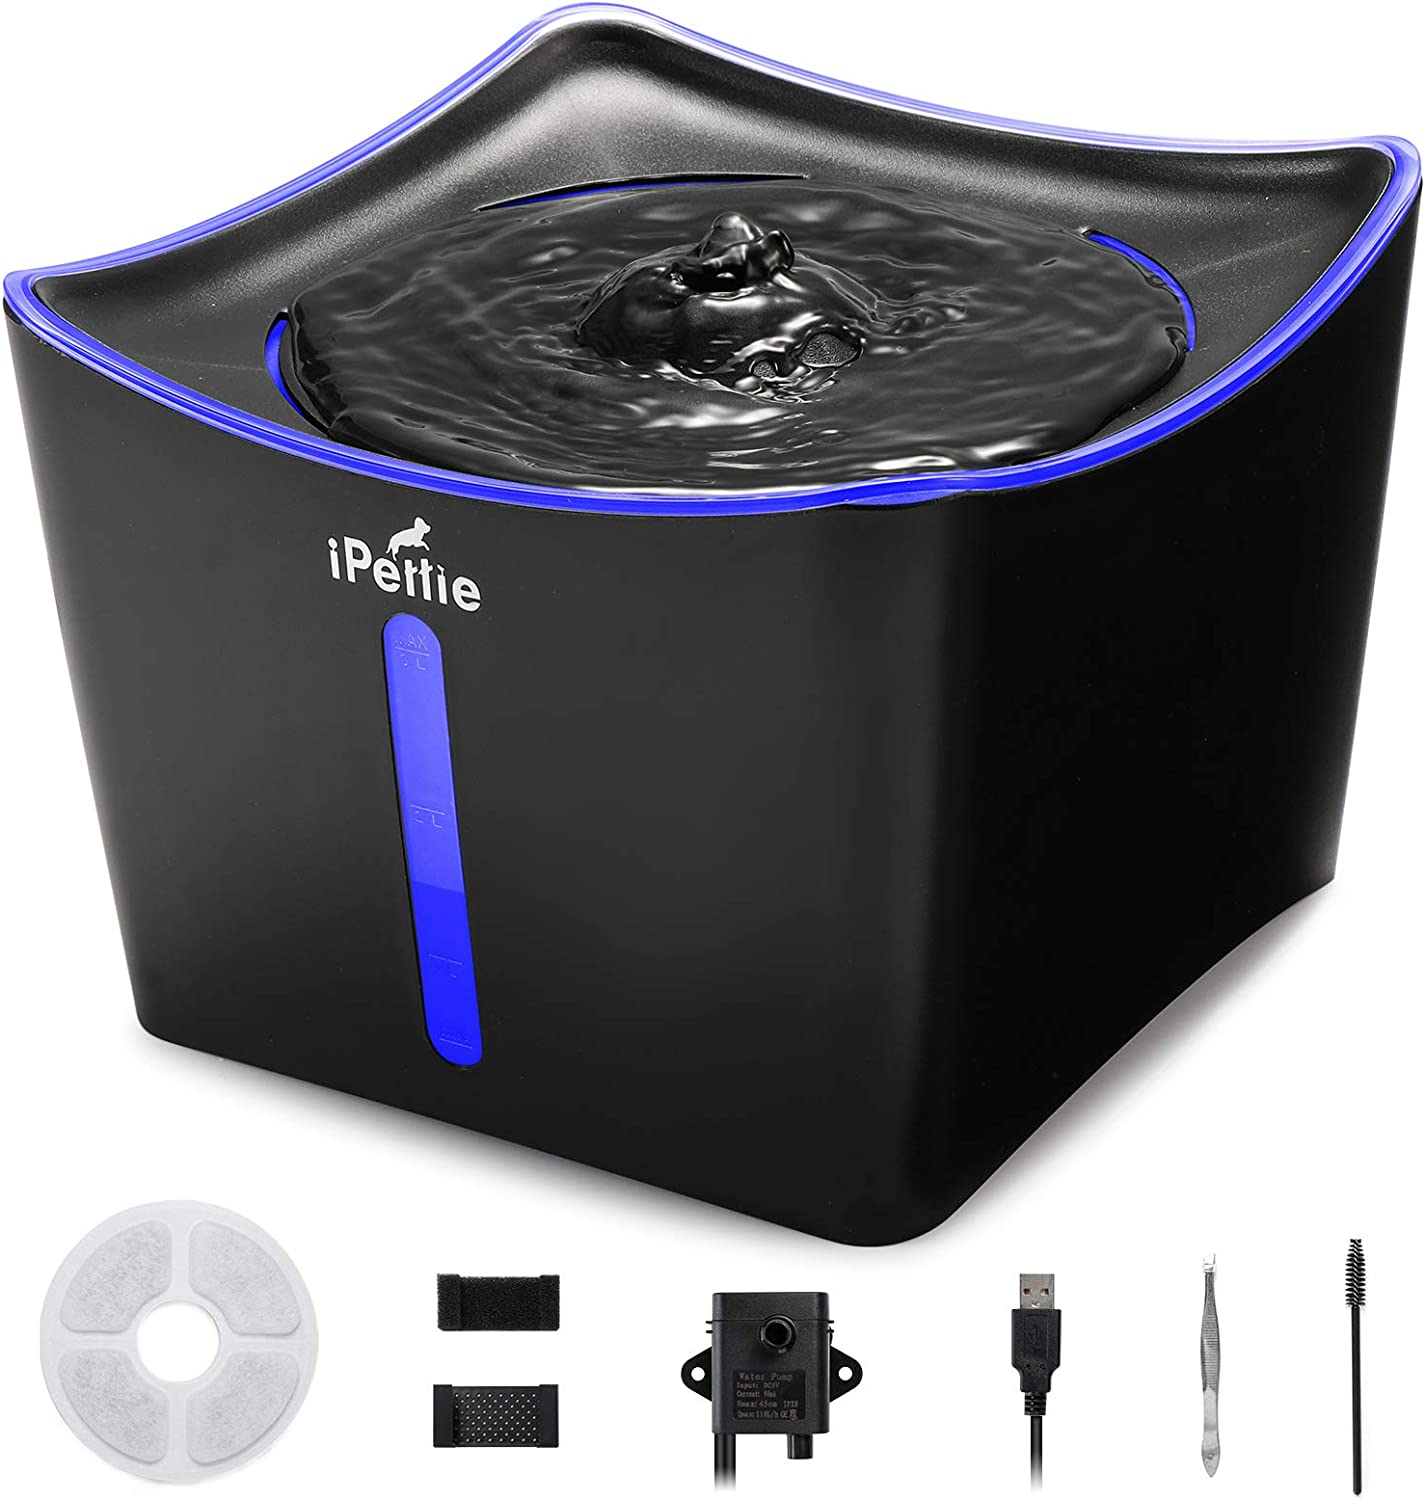 iPettie Kamino LED Light Pet Water Fountain 3L/101oz, Ultra-Quiet Automatic Water Dispenser with Water Level Window, USB Pump & Dual Filters for Cats and Dogs